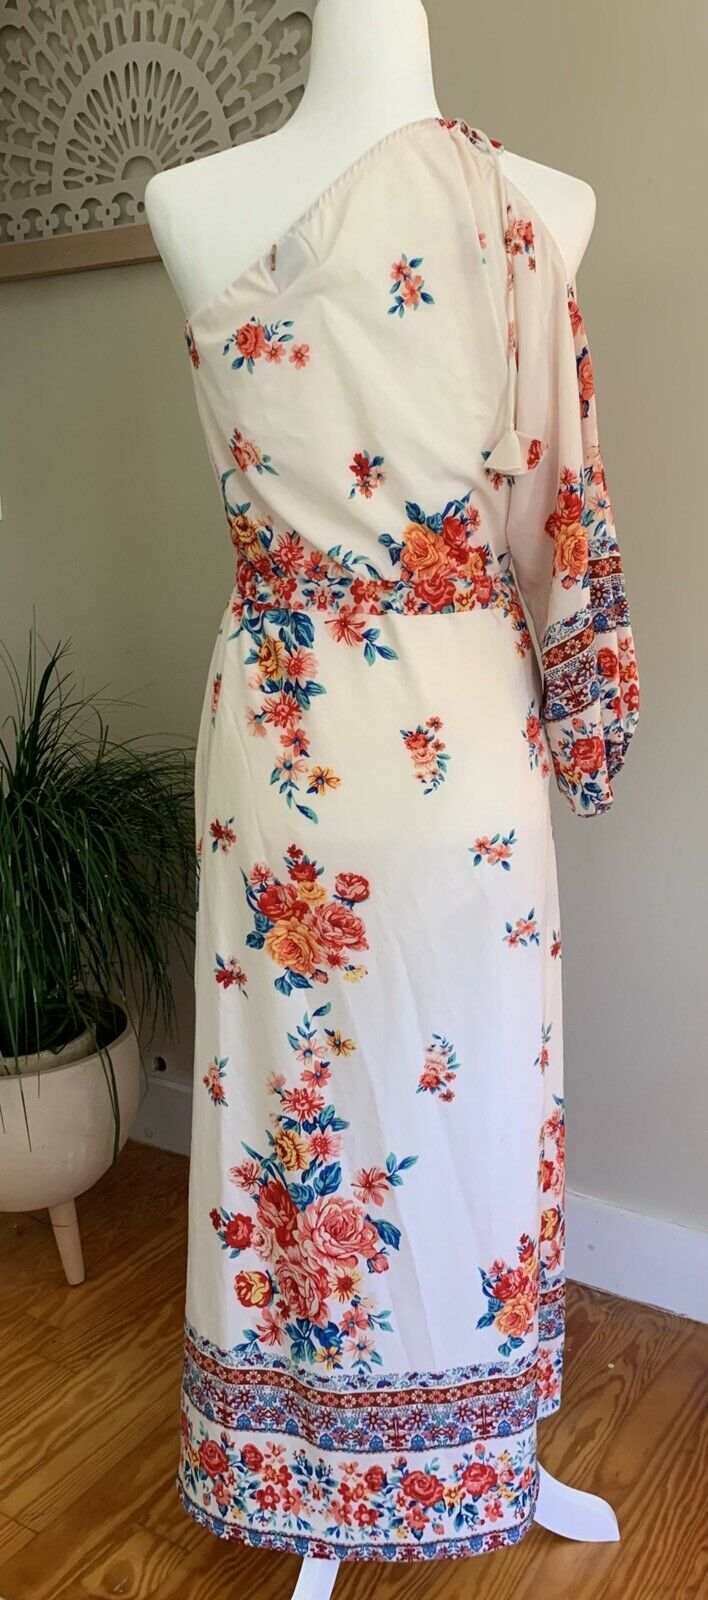 Catalina Dress in Floral MISA Los Angeles Sz S - image 6